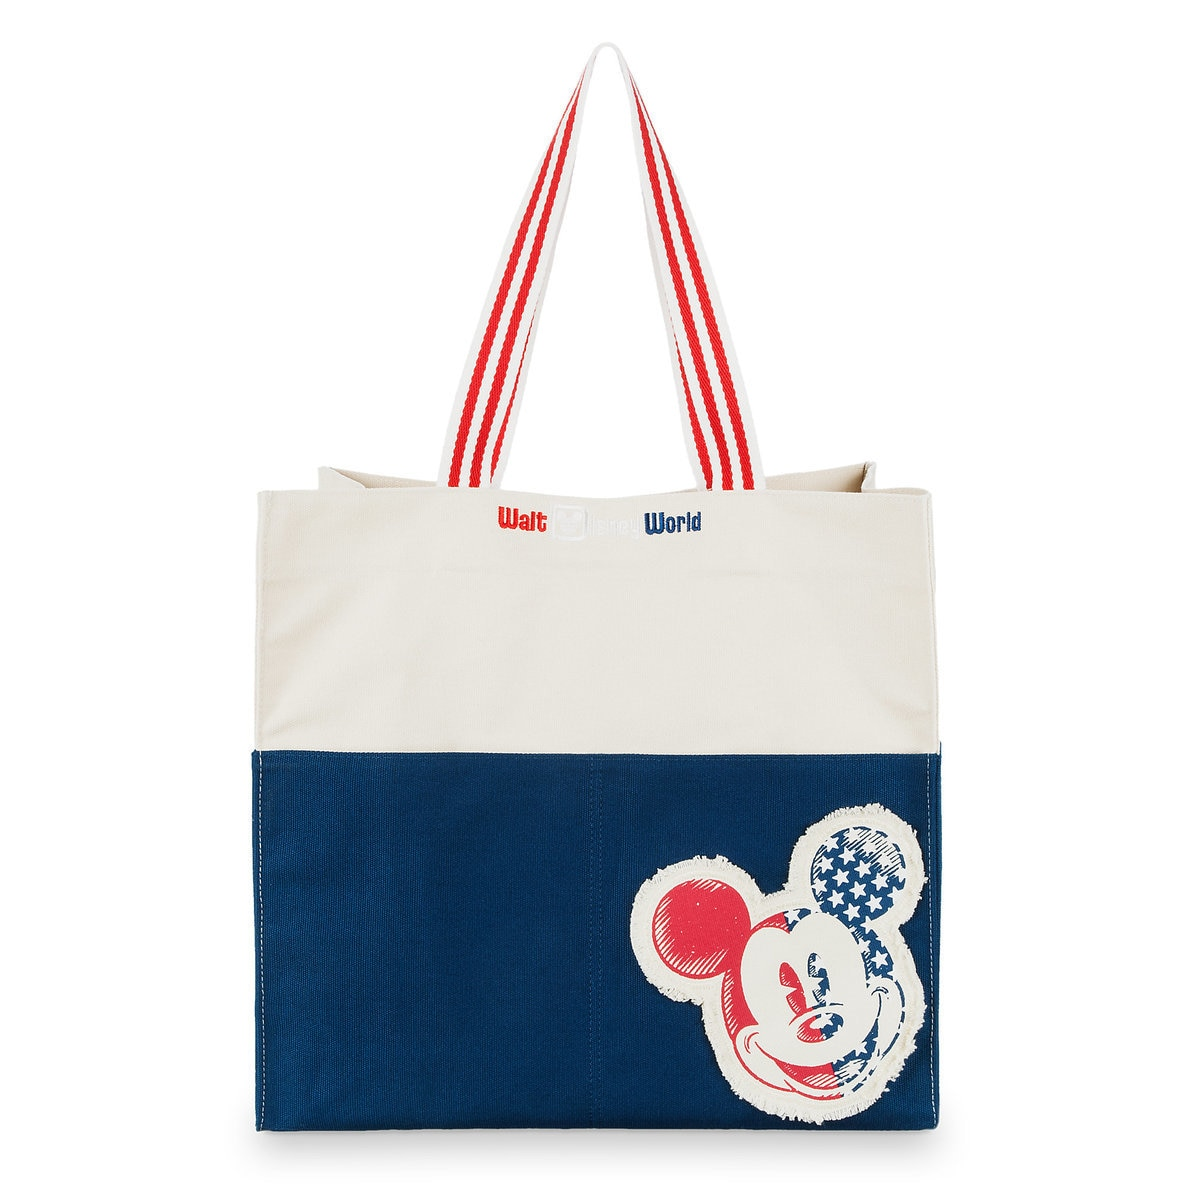 3a79d6a6ebc Product Image of Mickey Mouse Americana Tote Bag - Walt Disney World # 1